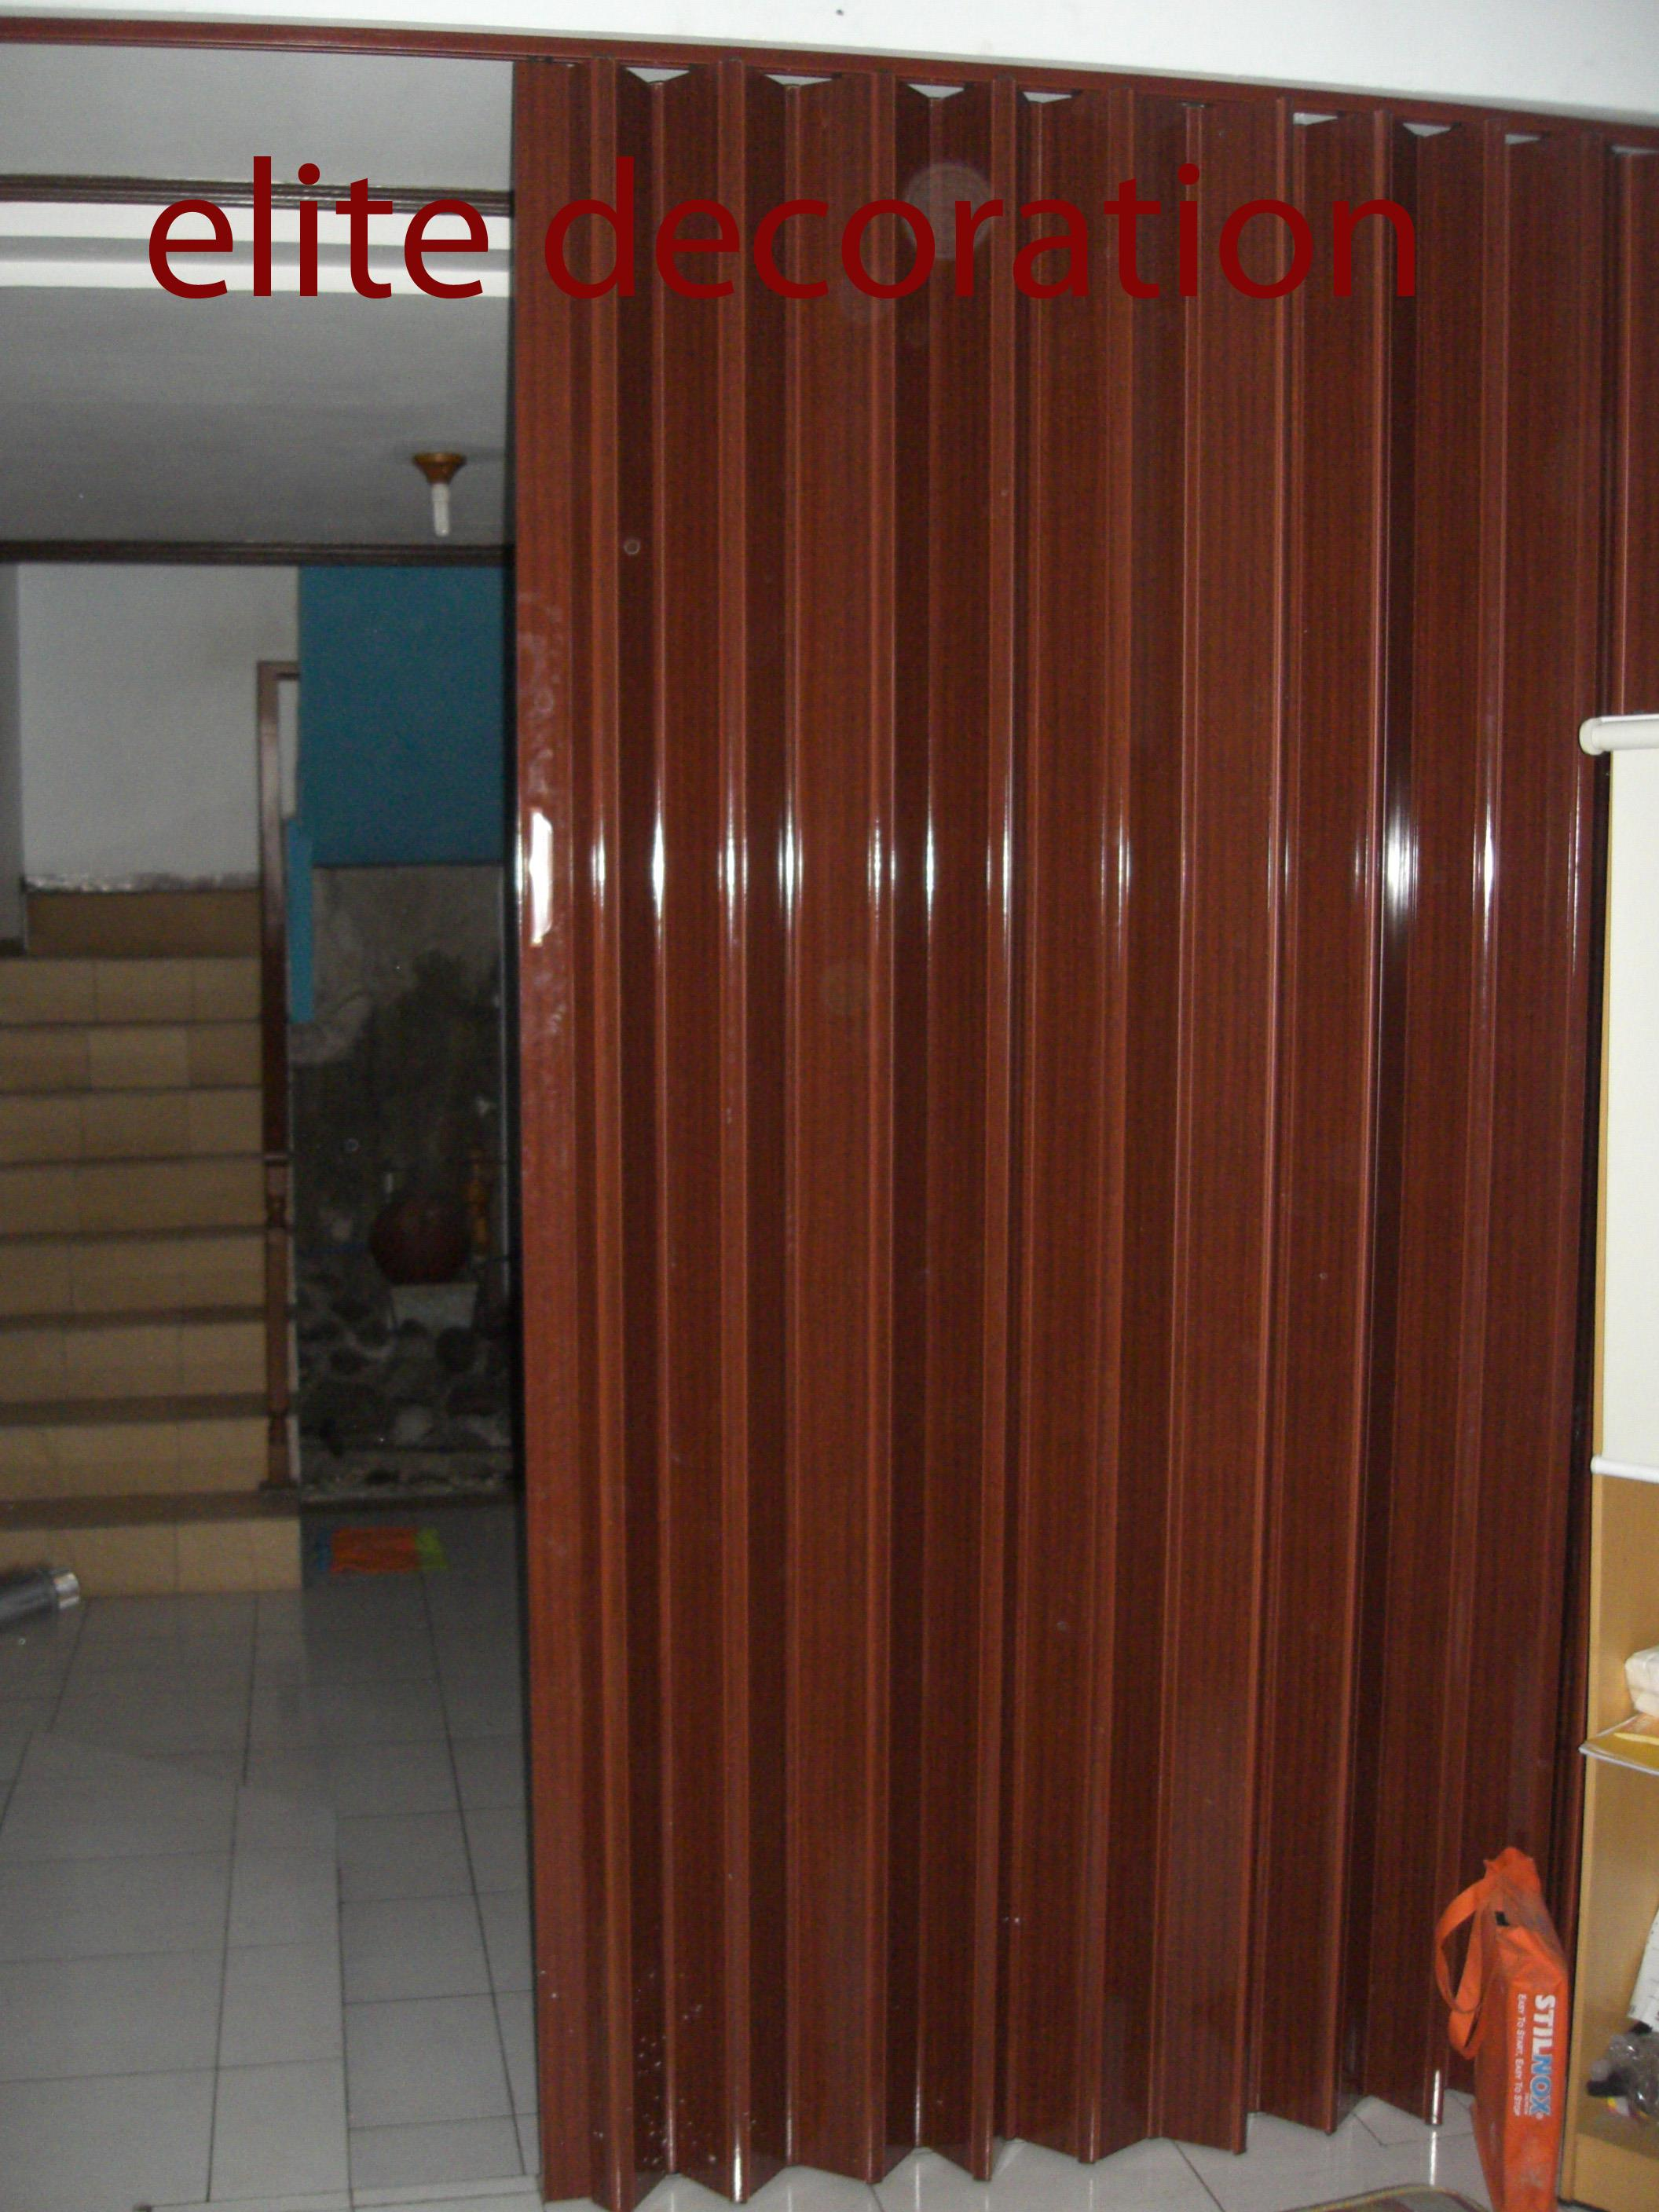 Pintu Sliding Pvc Sell Folding Door Pvc From Indonesia By Toko Elite Decoration Bandung Cheap Price